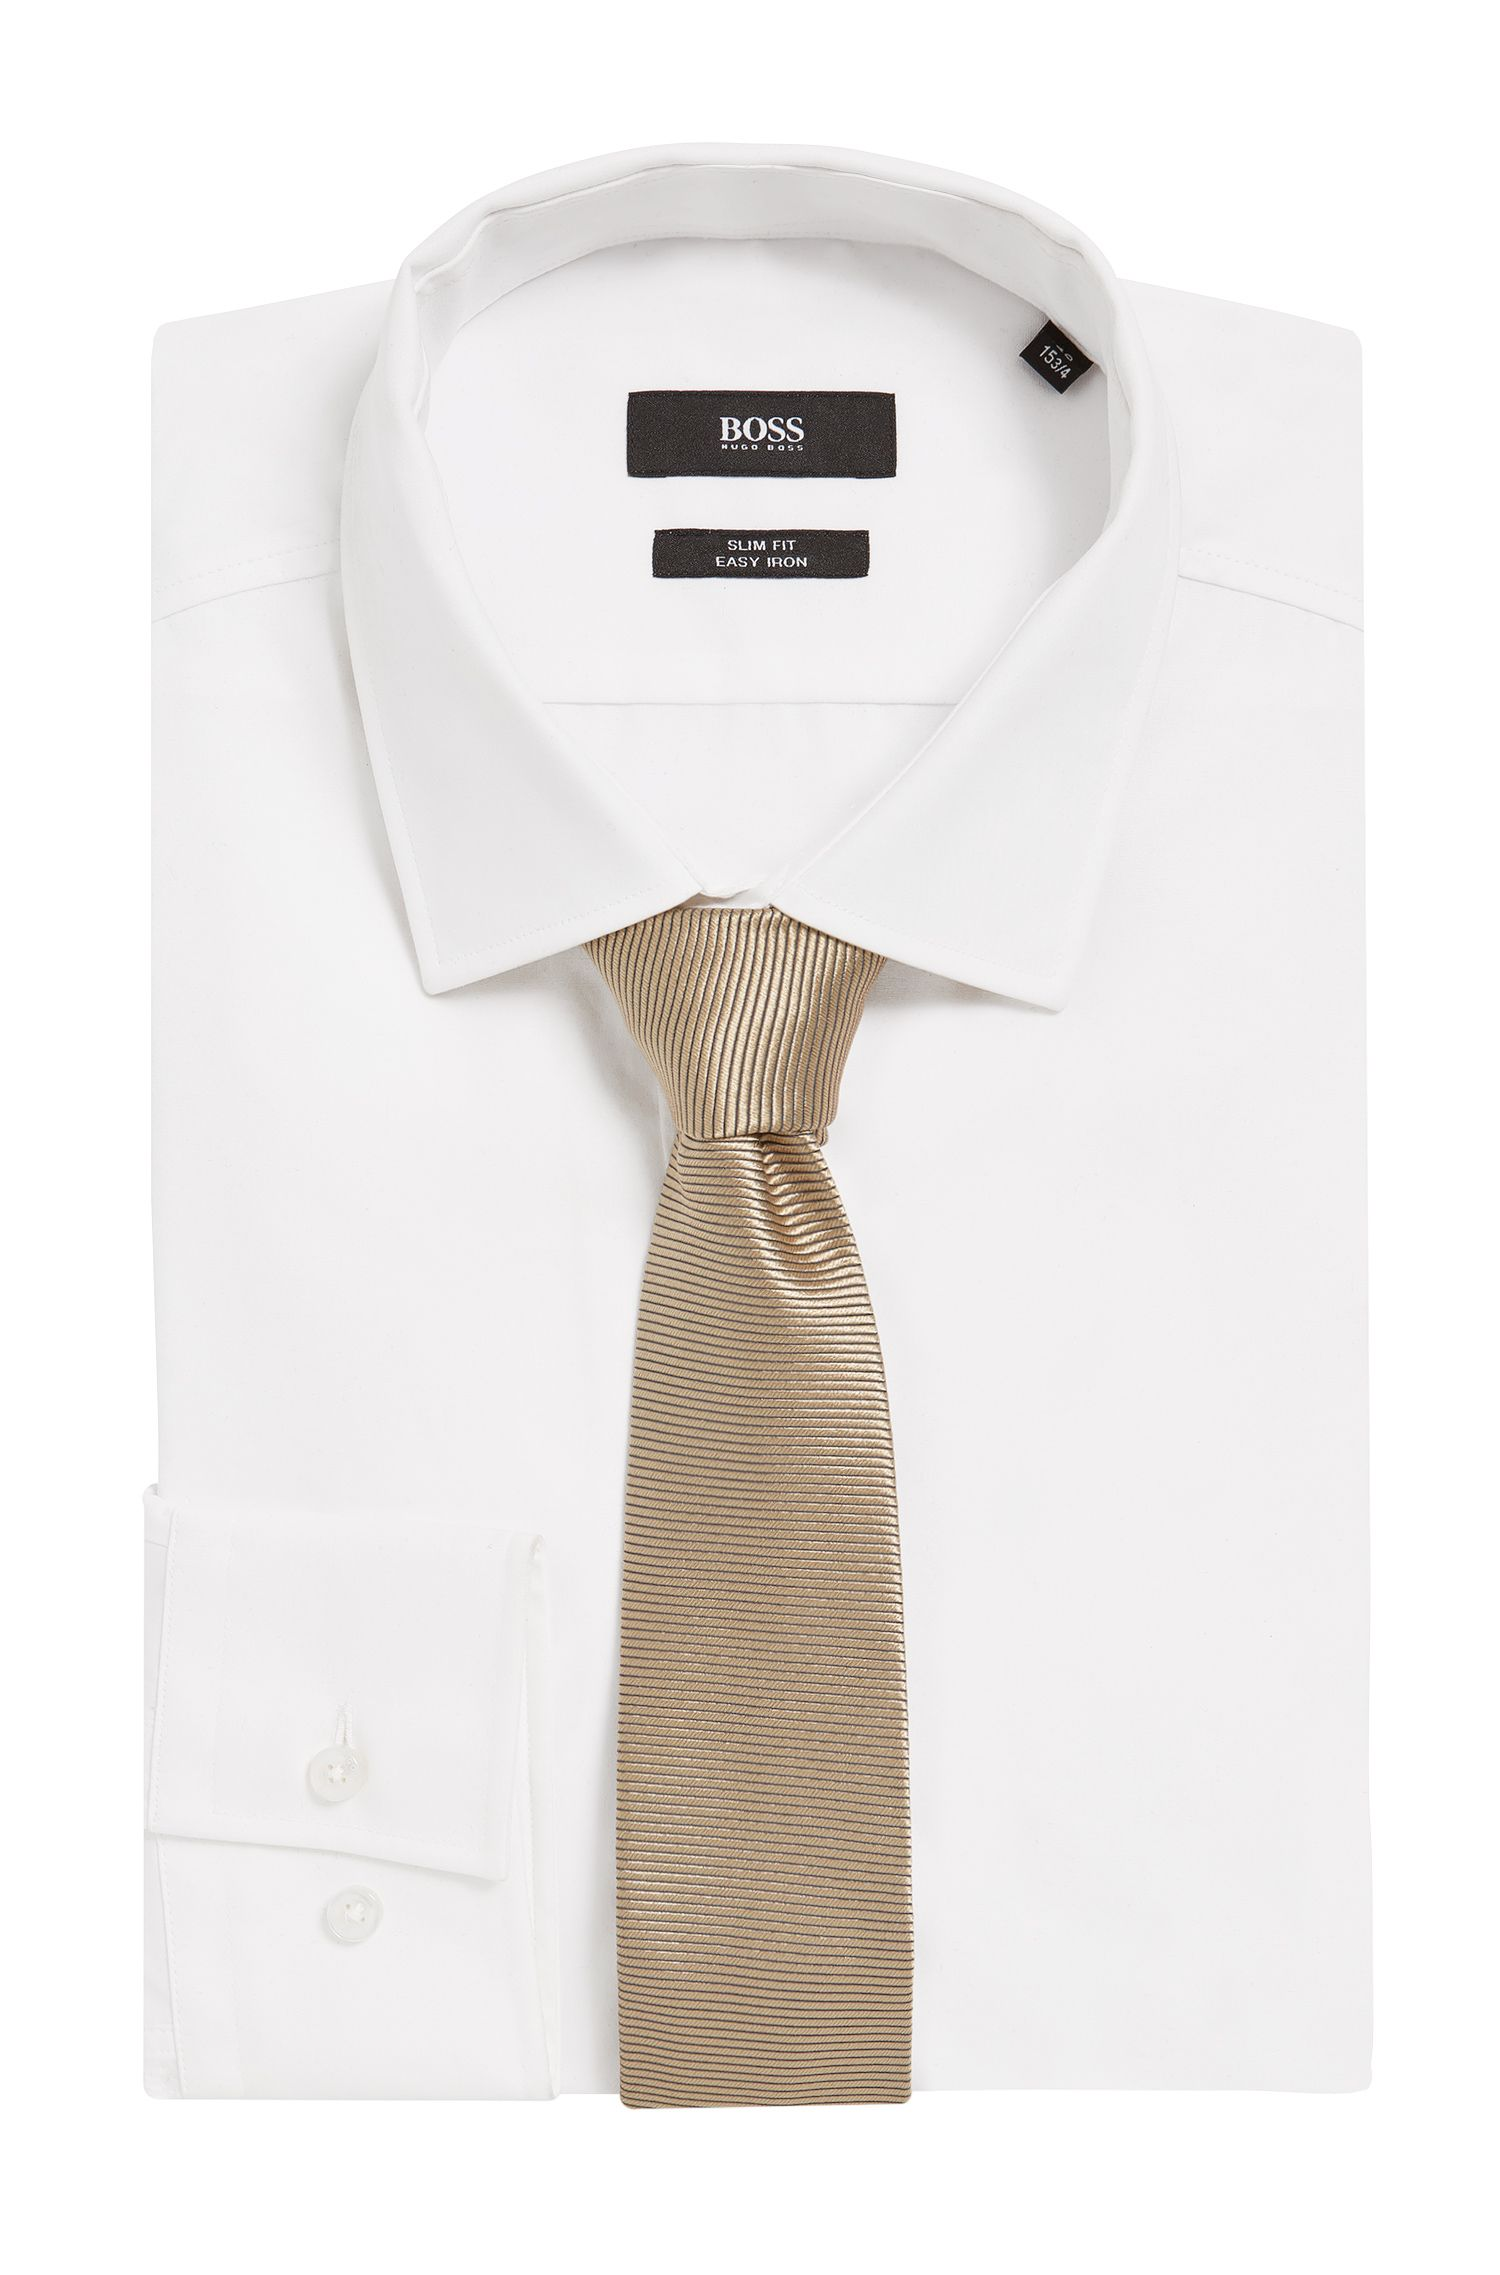 BOSS Tailored Italian Silk Slim Tie, Beige